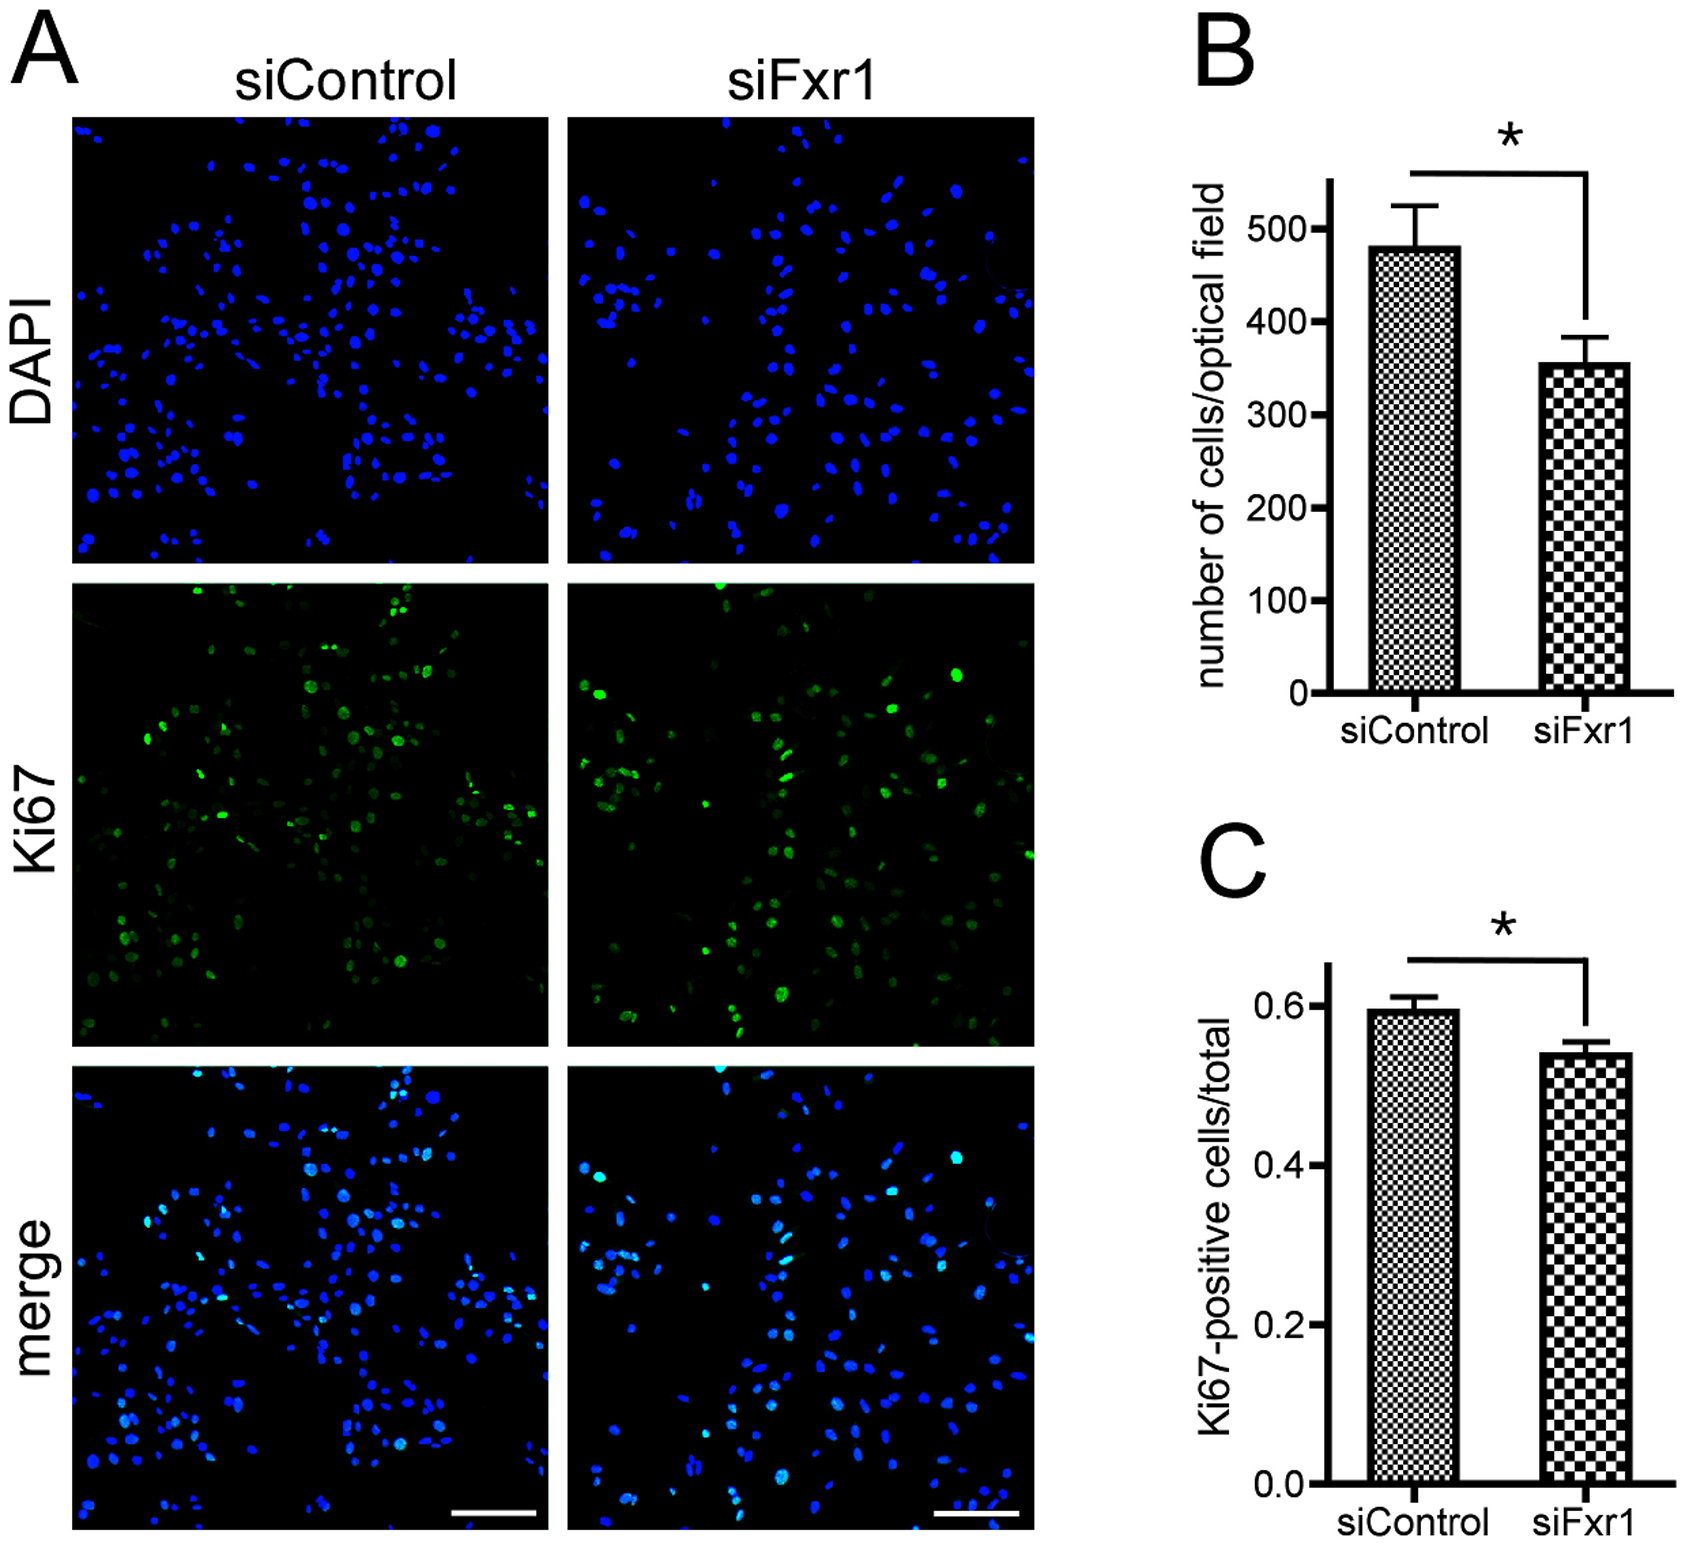 Knockdown of FXR1P induces premature cell cycle exit of myoblasts.